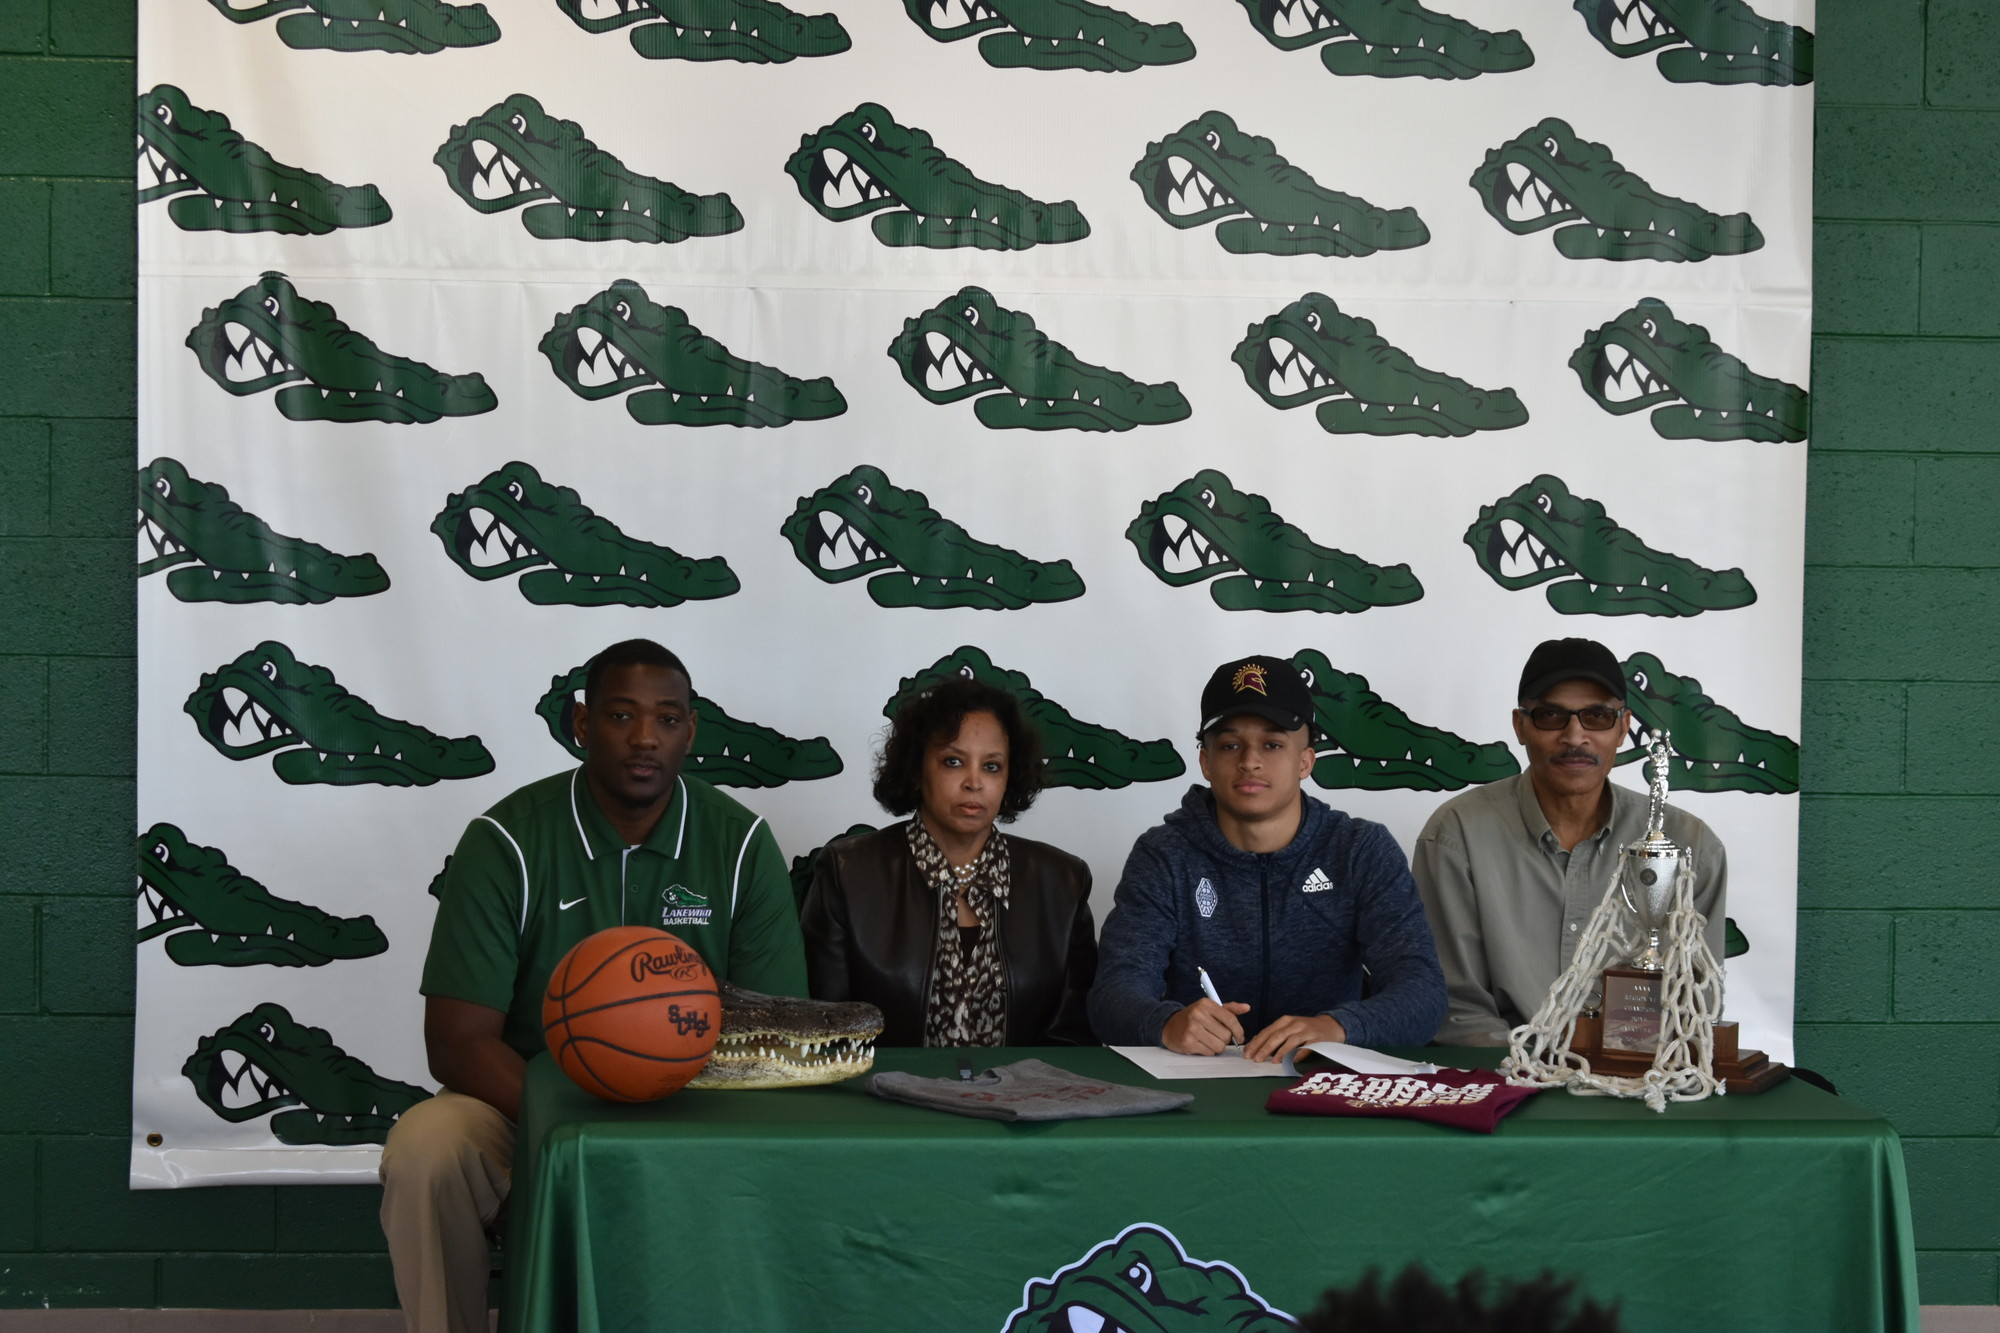 Dennis Brunson/The Sumter Item Lakewood High School's Grant Singleton, second from right, has signed to play college basketball with St. Thomas Aquinas College, an NCAA Division II school located in Sparkill, N.Y. Seated with Singleton left to right, are Lakewood head coach Bryan Brown, his mother, Nikki Singleton, and his father, Wilbert Singleton.